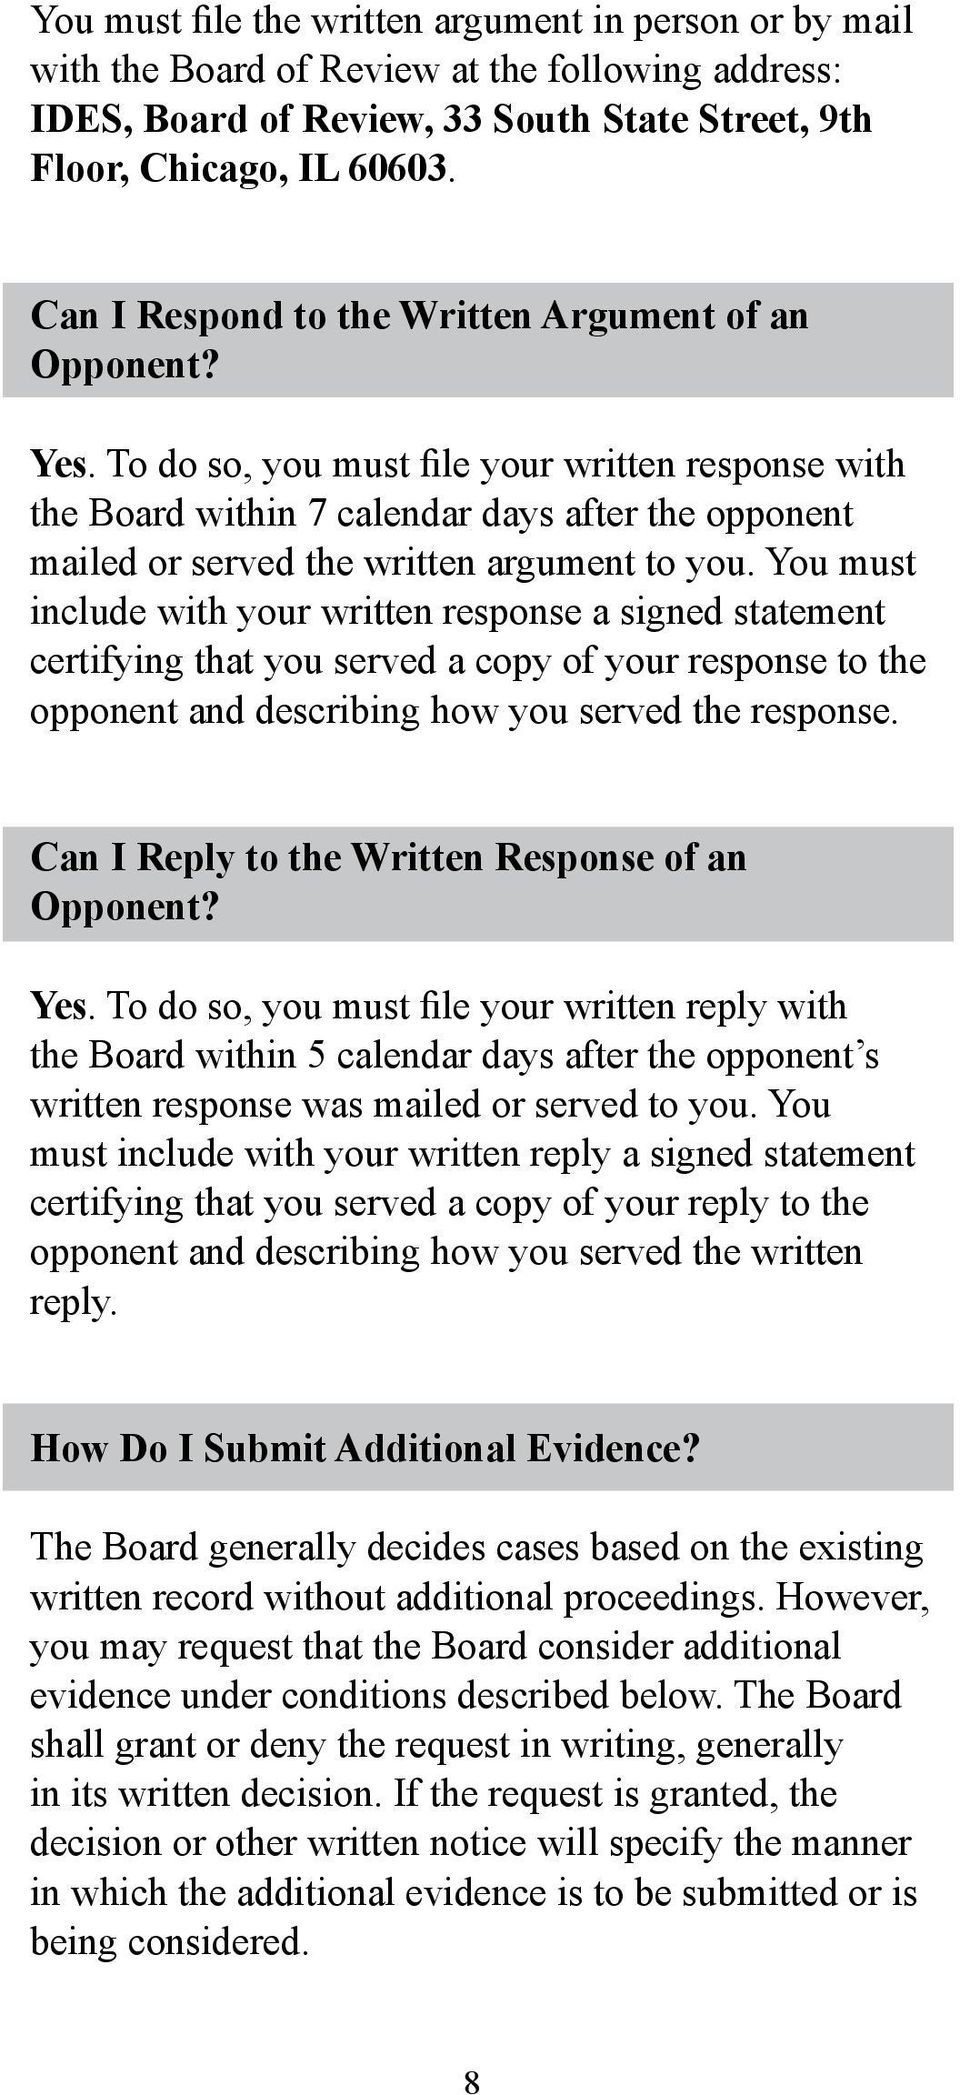 To do so, you must file your written response with the Board within 7 calendar days after the opponent mailed or served the written argument to you.